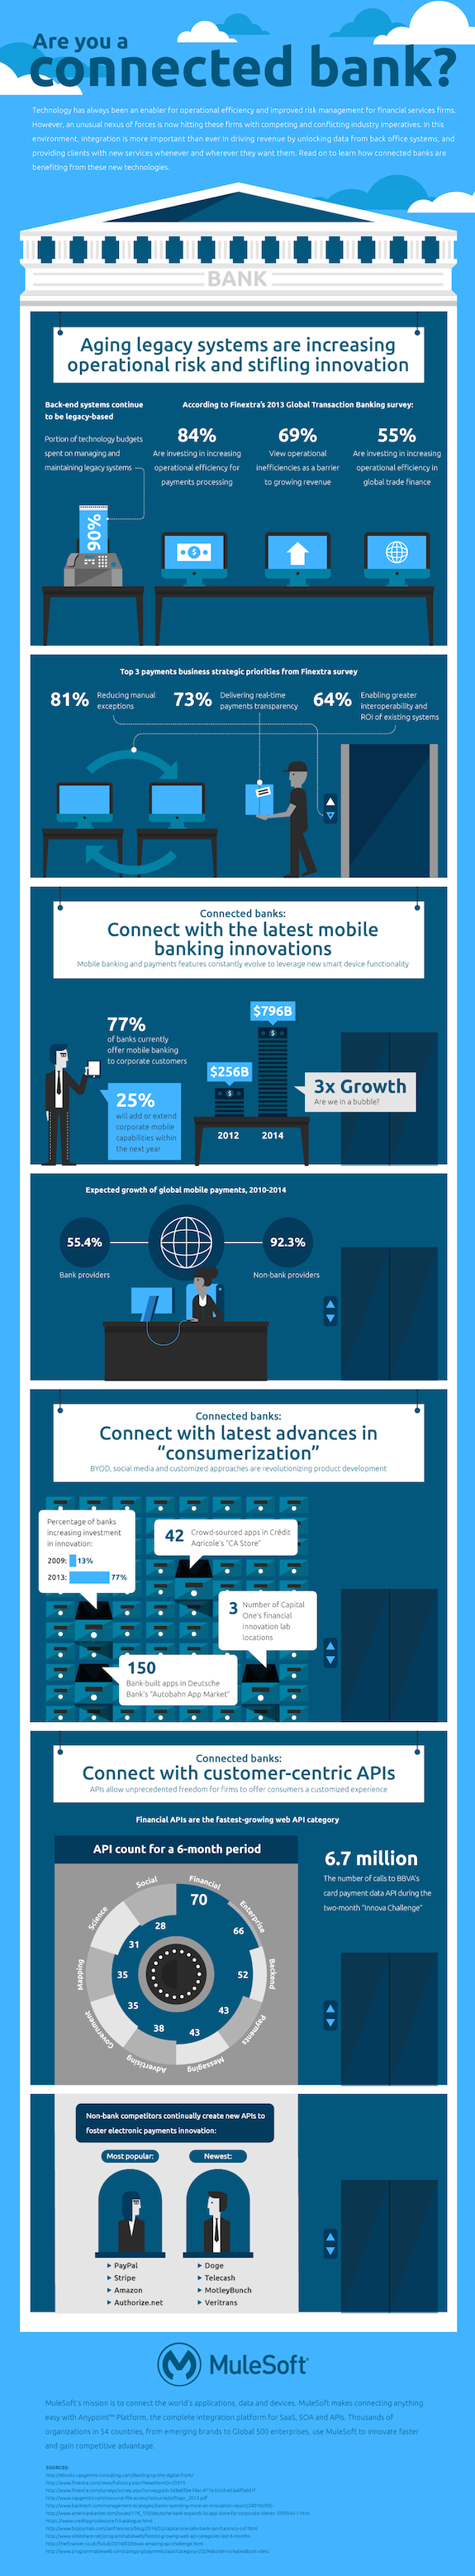 Infographic from MuleSoft.